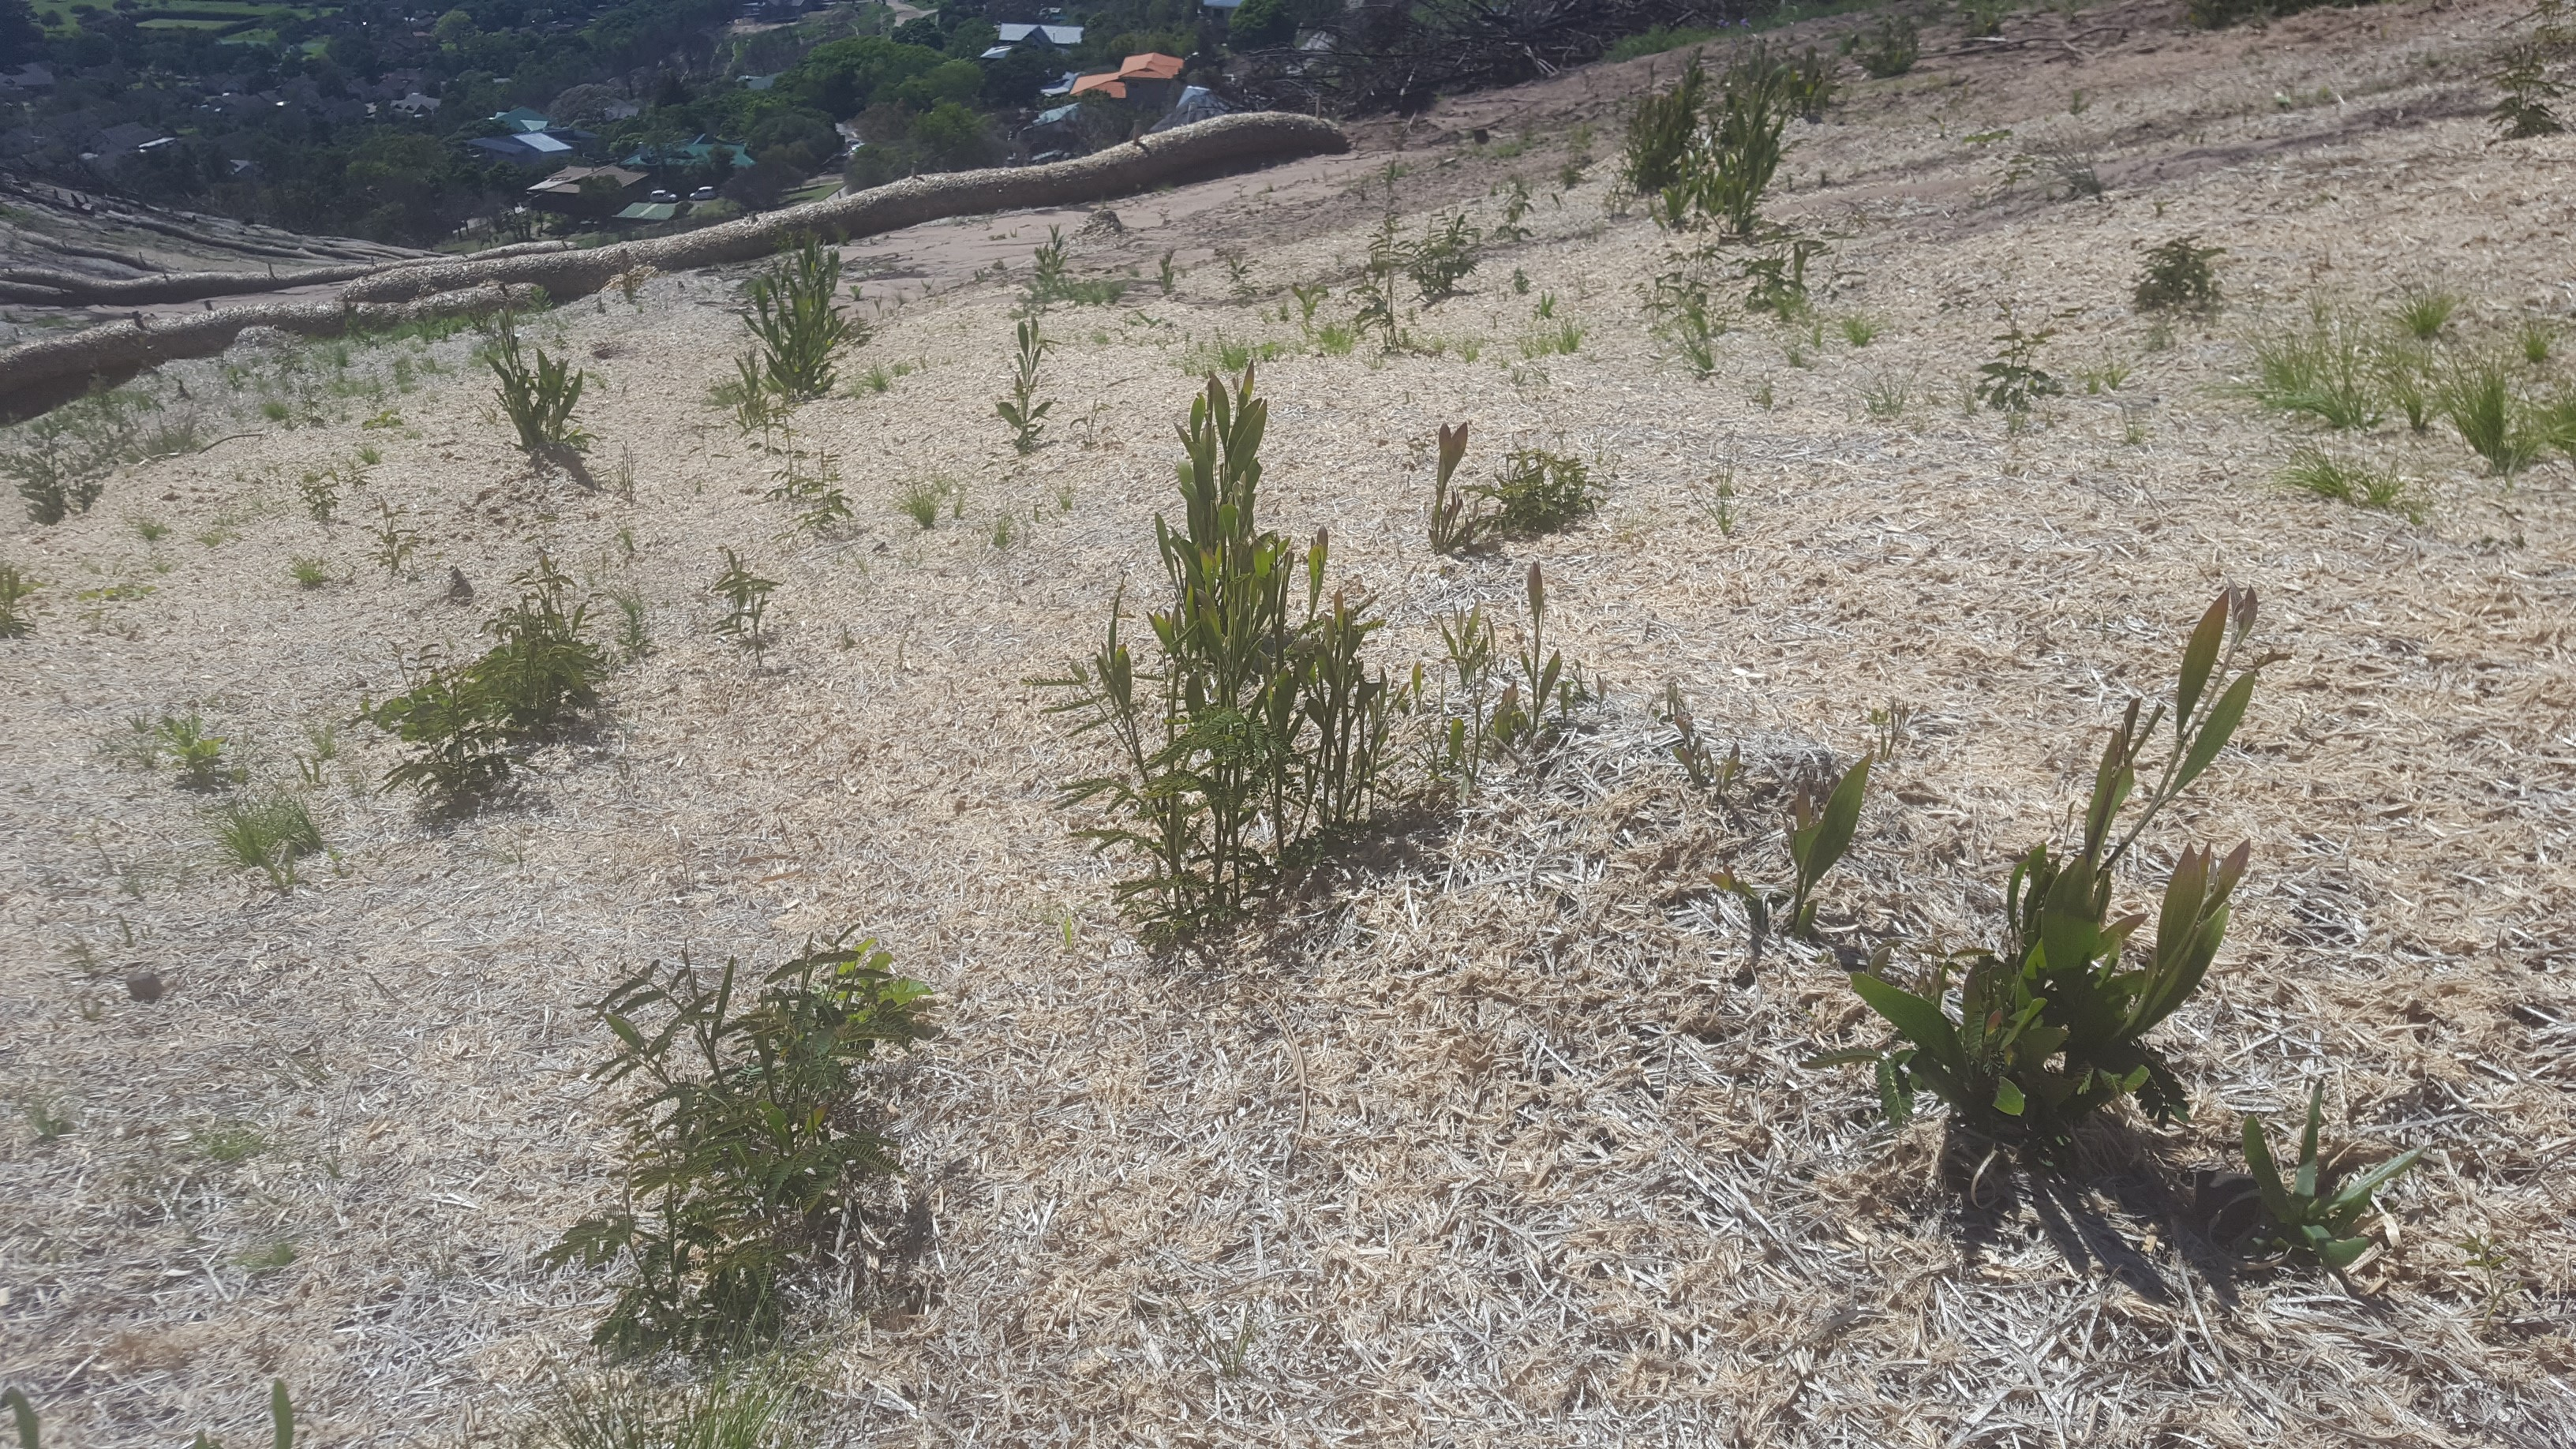 Garden Route: Post-fire plant regrowth patterns